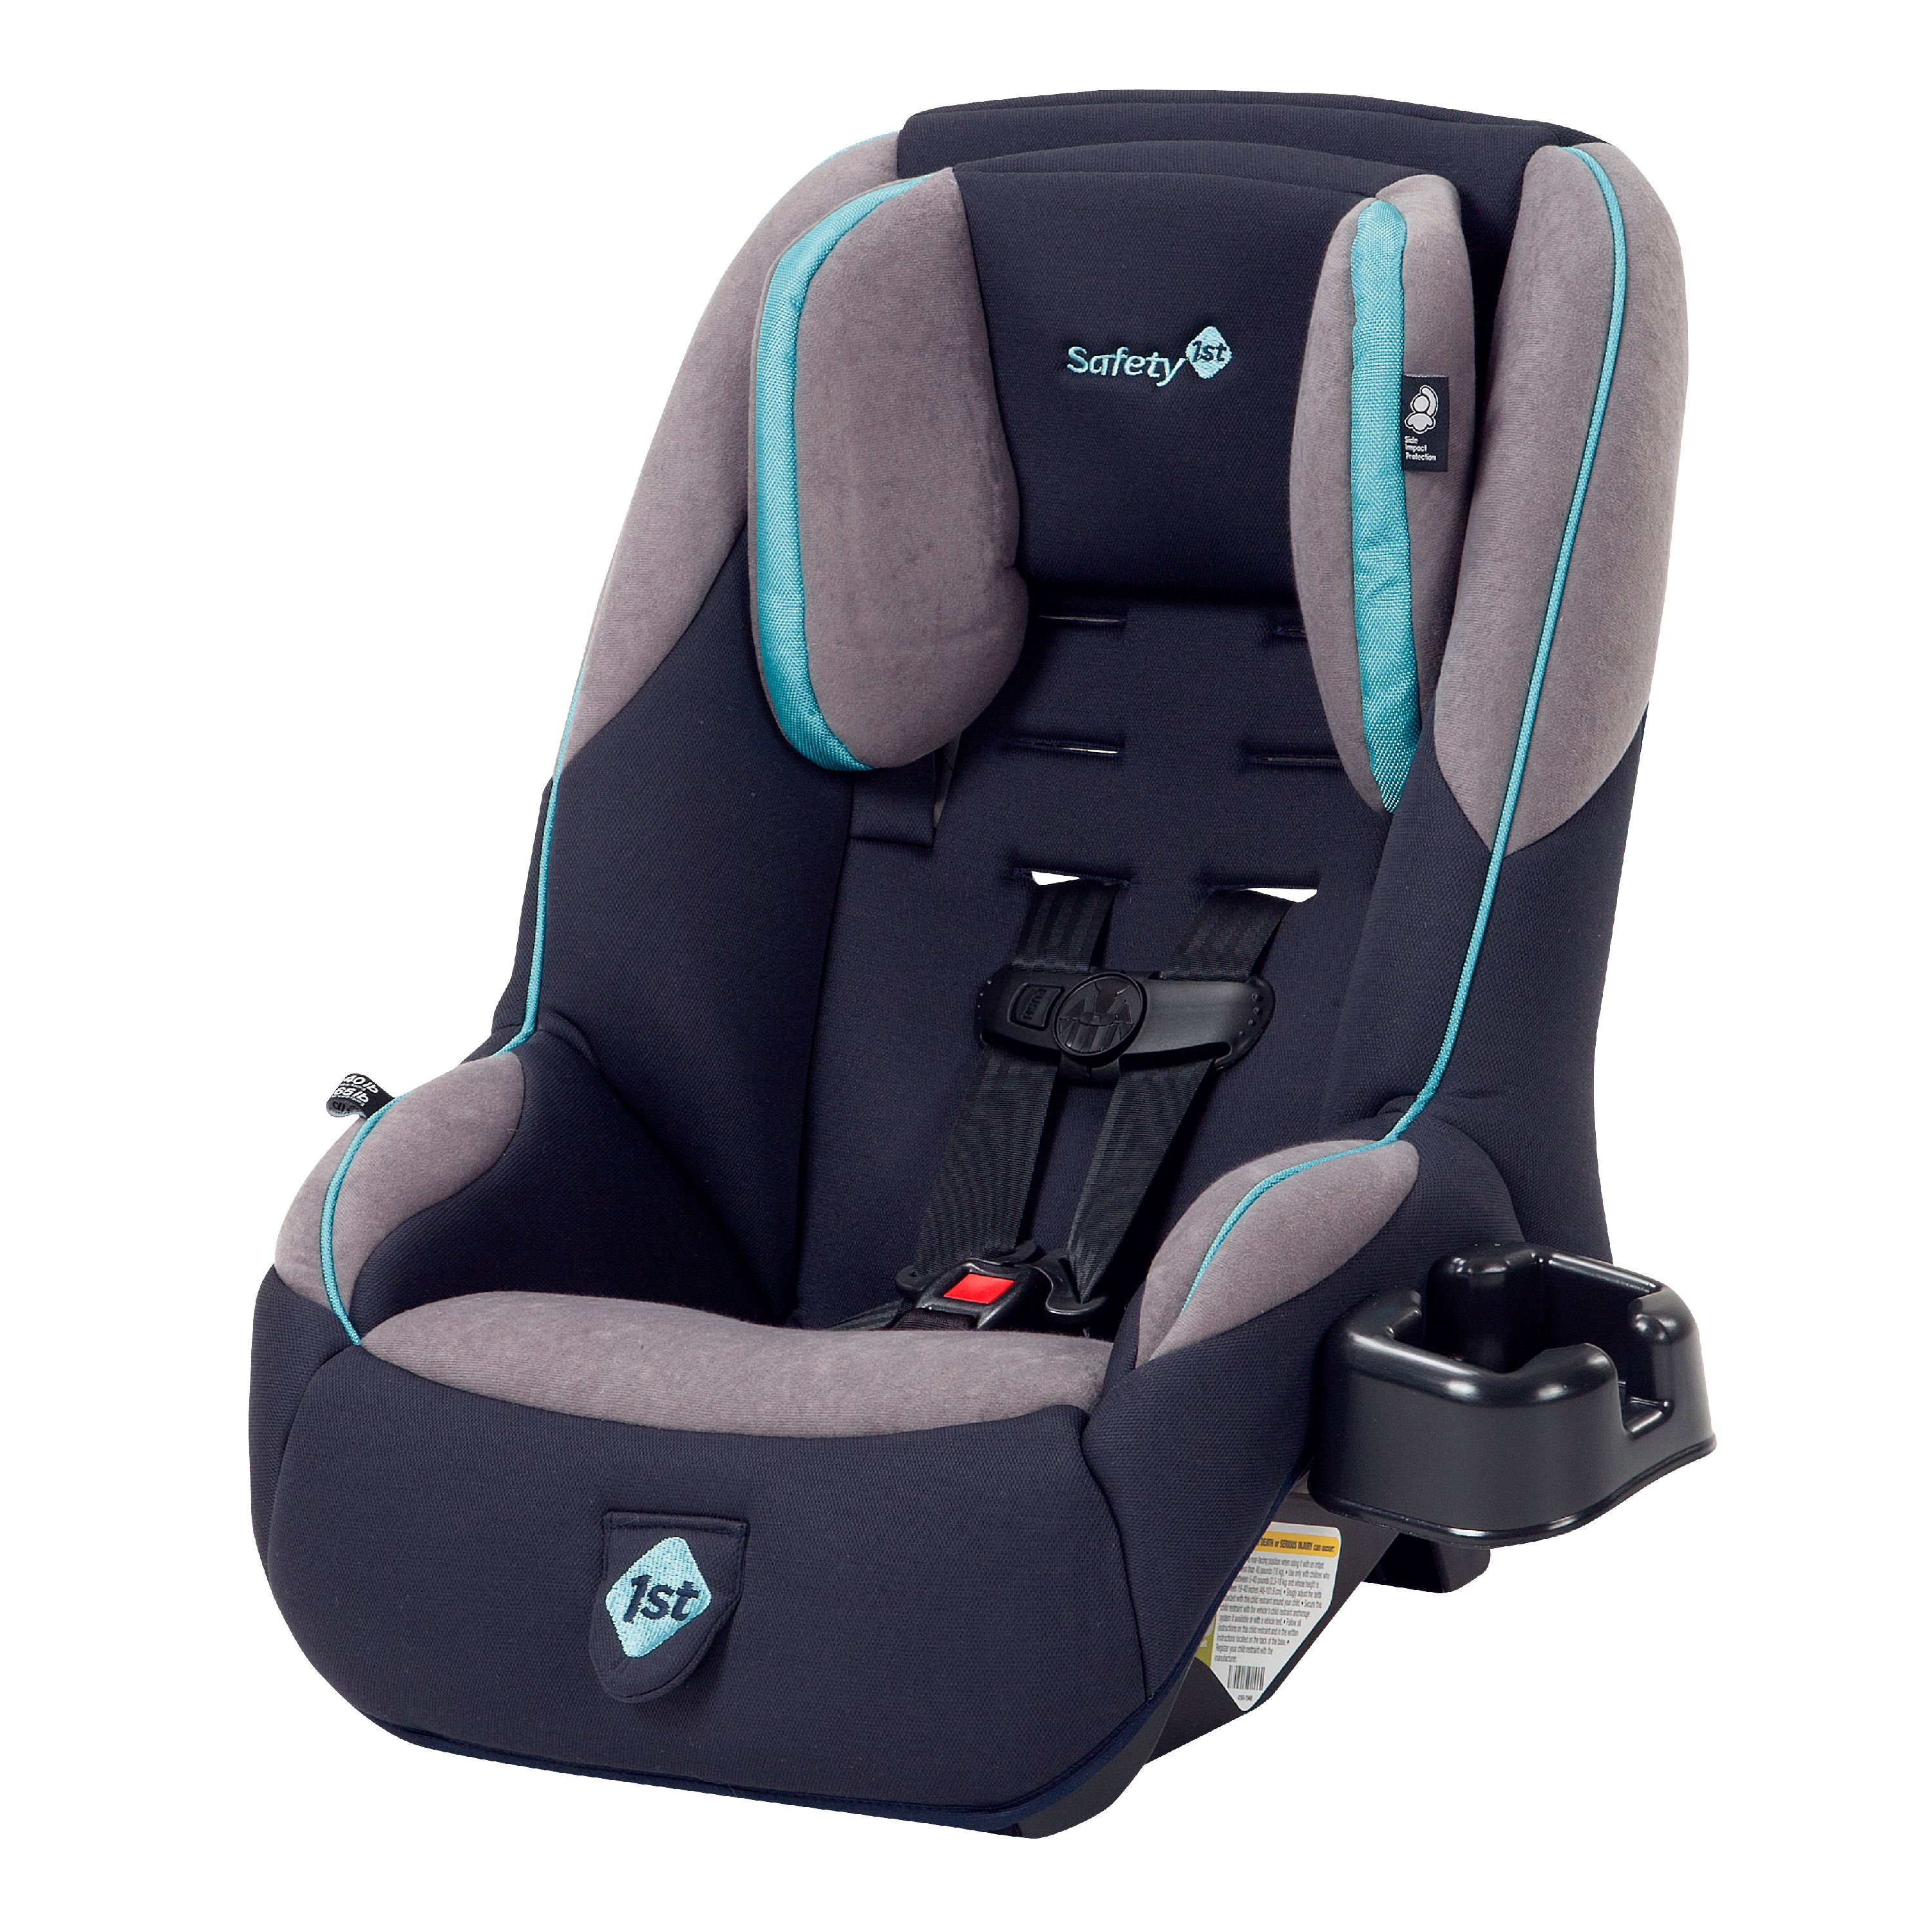 Safety 1�ᵗ Guide 65 Convertible Car Seat, Seaport by Safety 1st